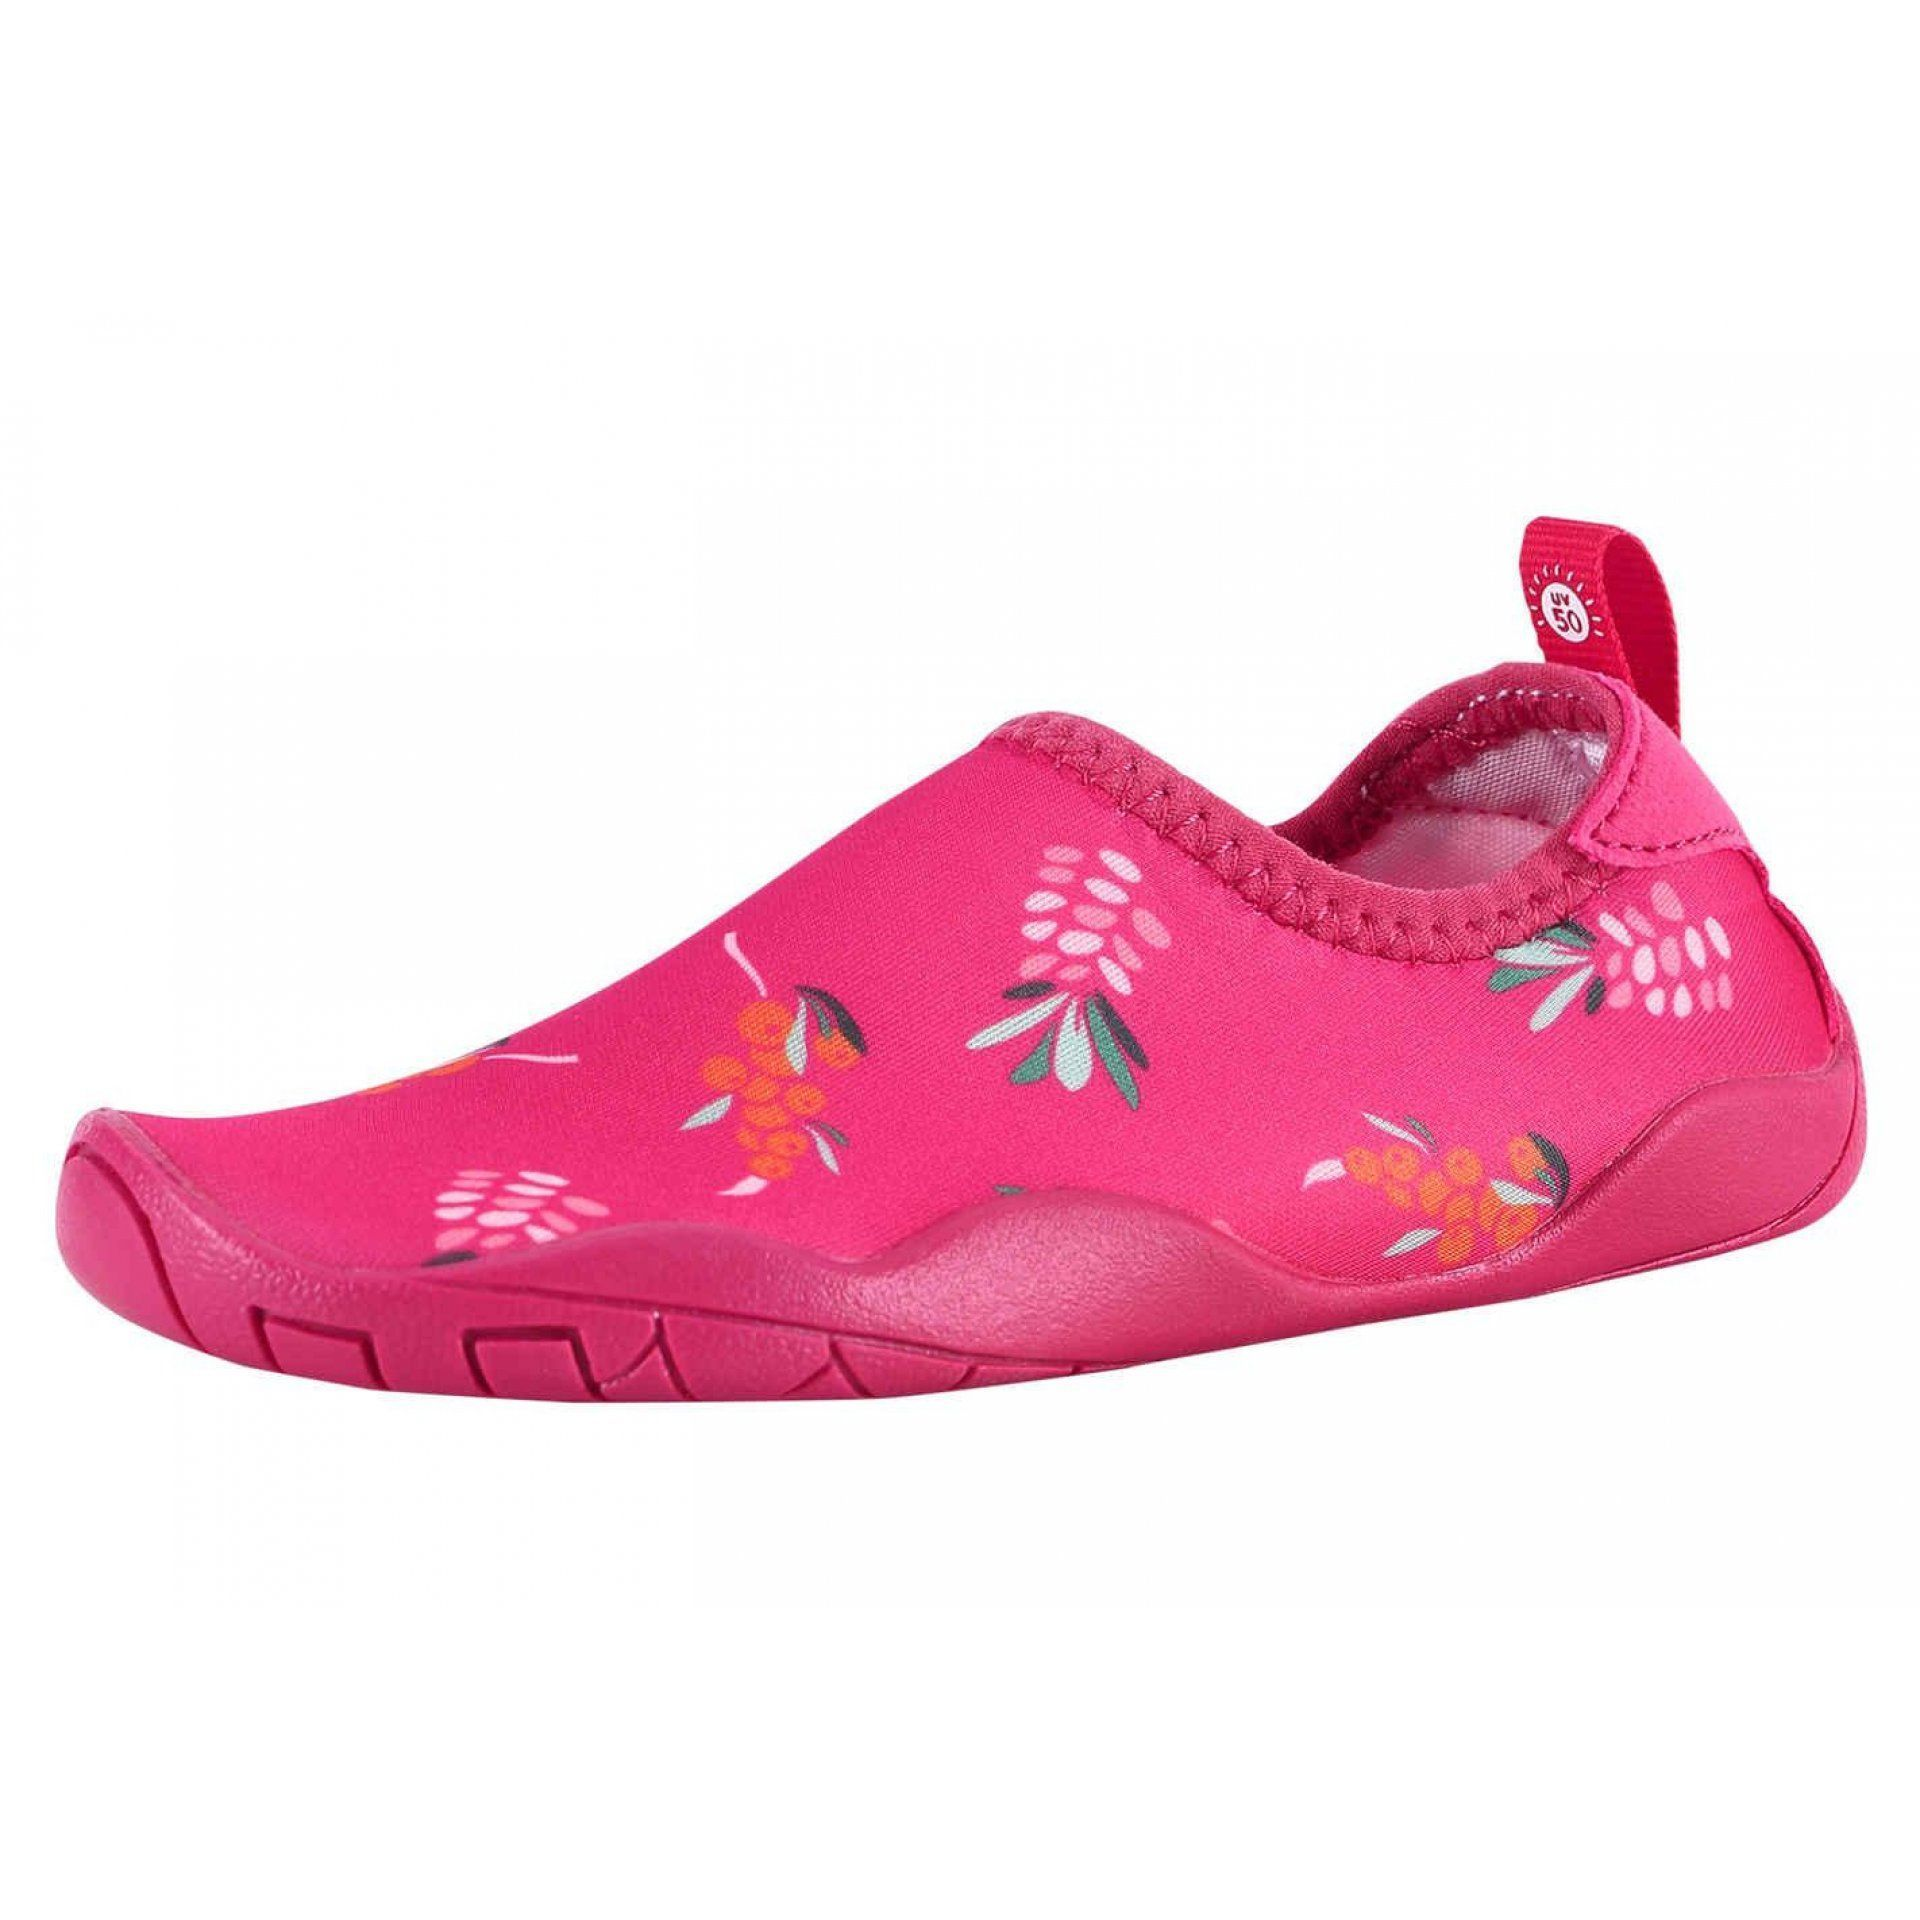 BUTY REIMA LEAN 569419-4463 BERRY PINK